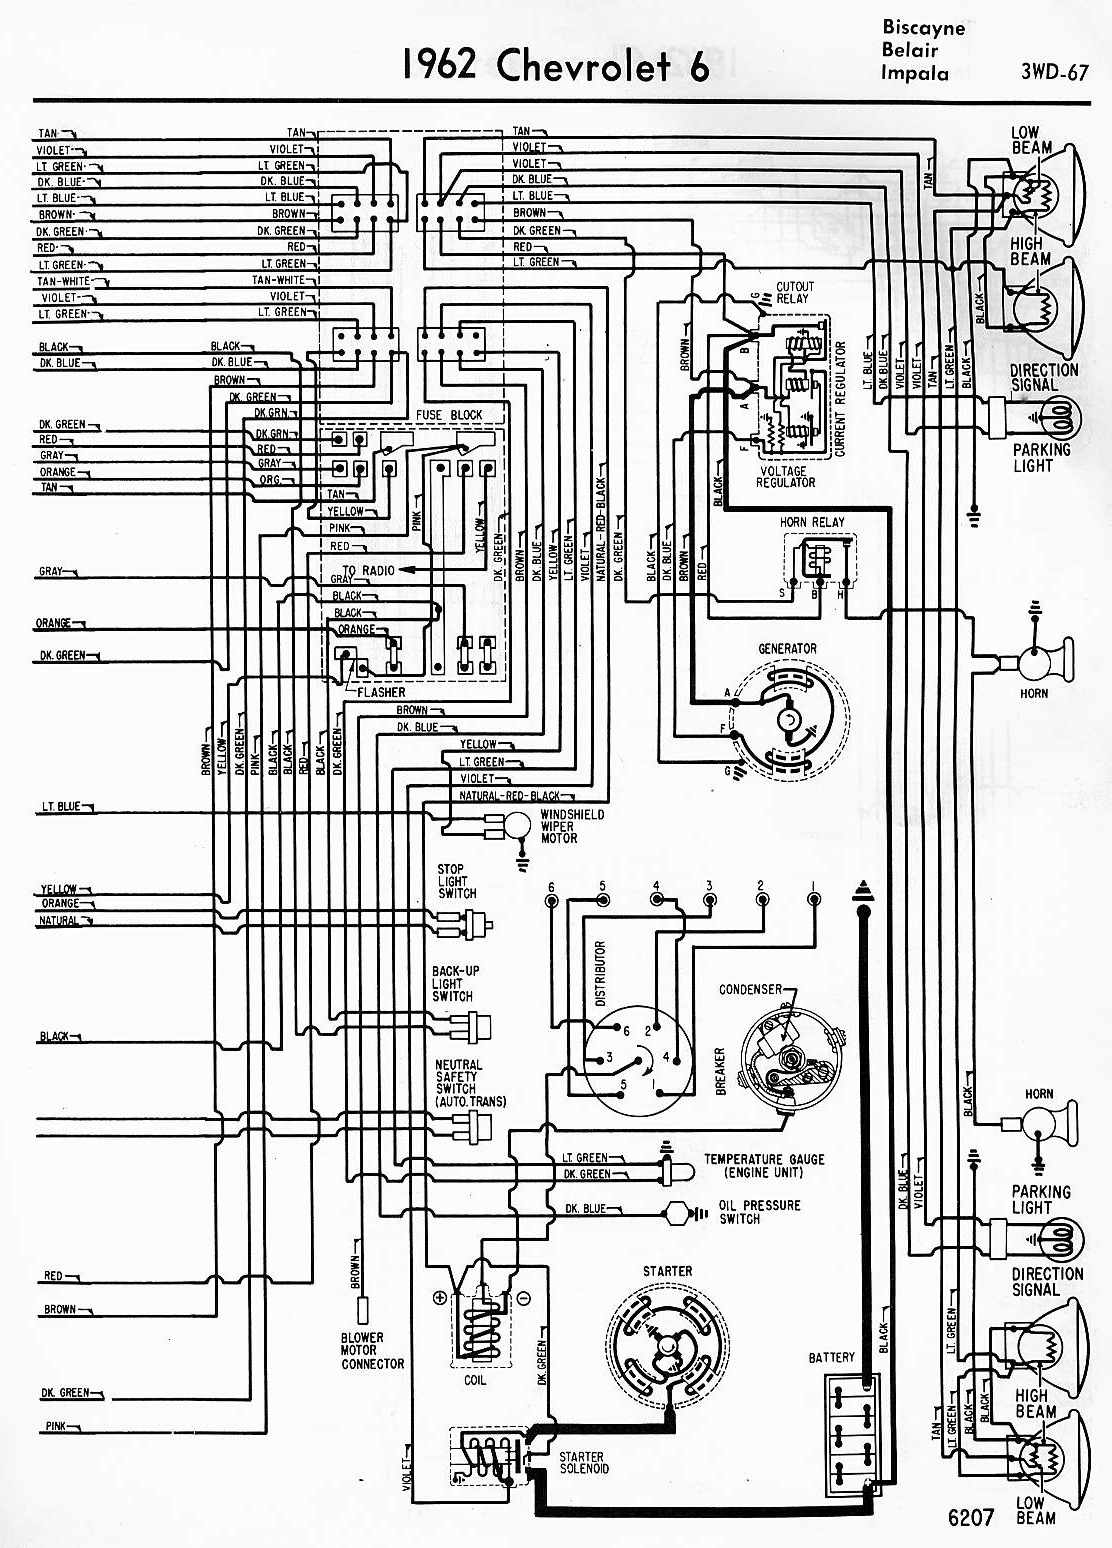 1964 chrysler wiring schematic 1964 wiring diagrams description 1963 impala wiring diagram 1963 auto wiring diagram schematic on 1964 chrysler wiring schematic